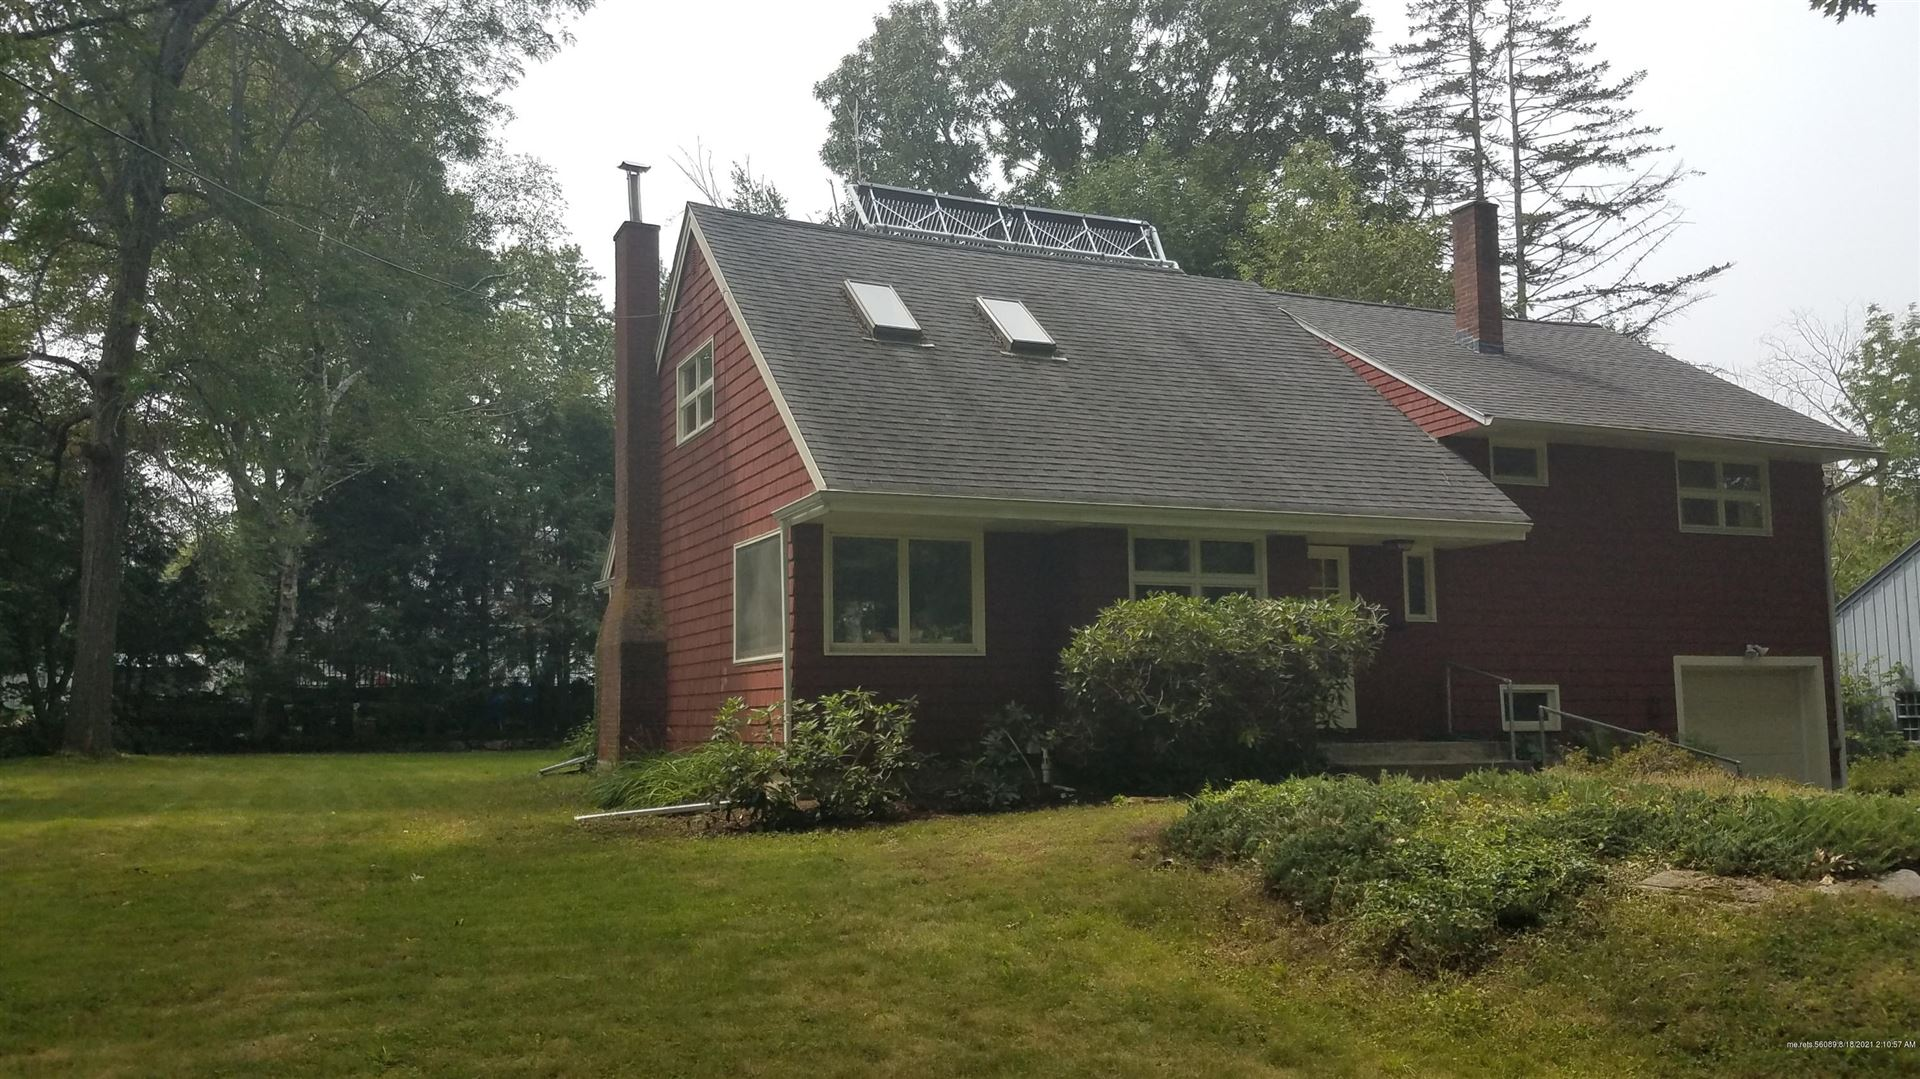 Photo of 120 Mayflower Hill Drive, Waterville, ME 04901 (MLS # 1503798)